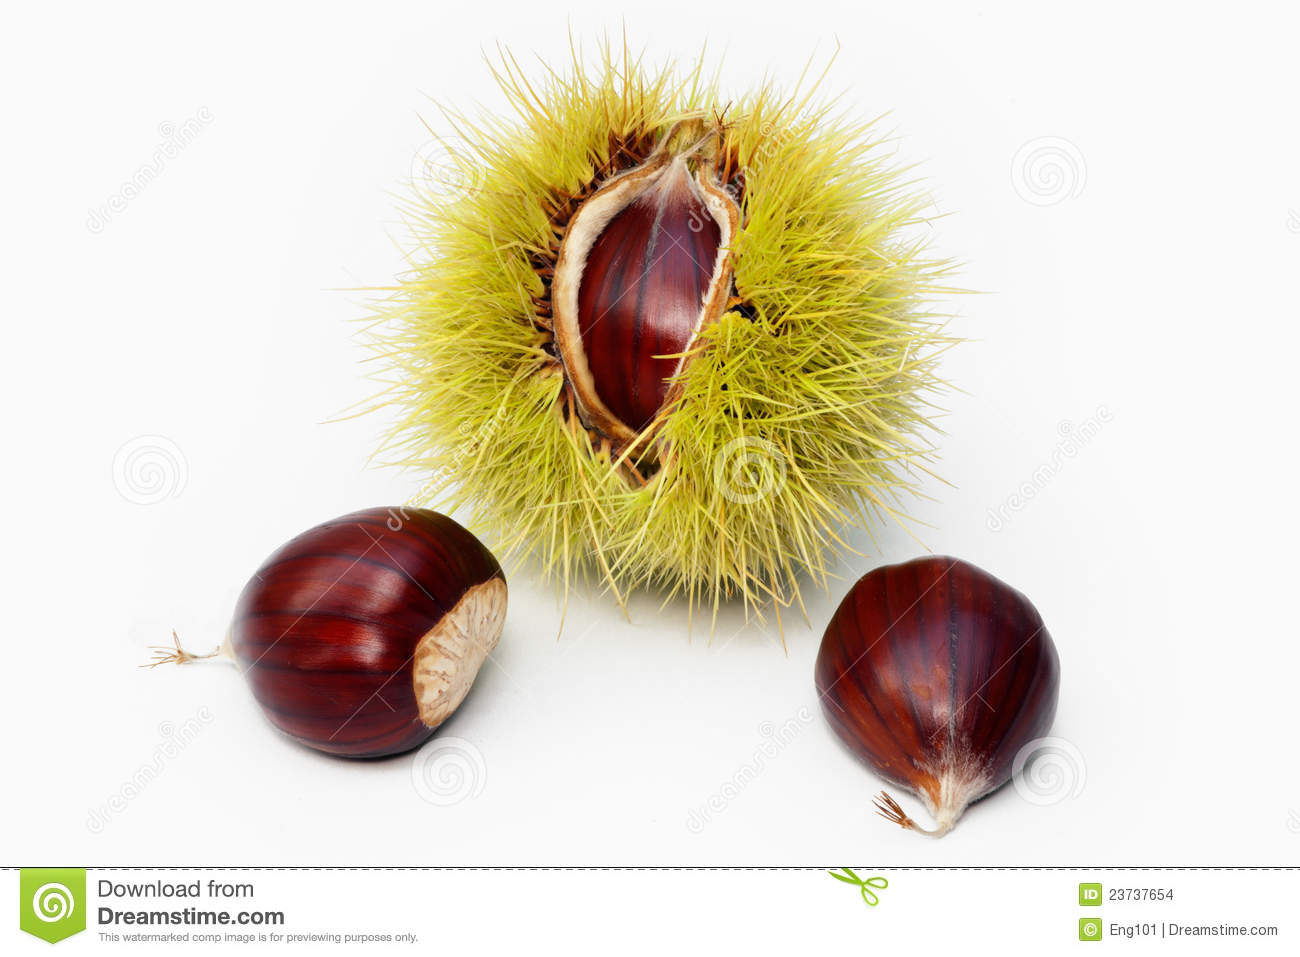 Chestnut Fruit and Seeds